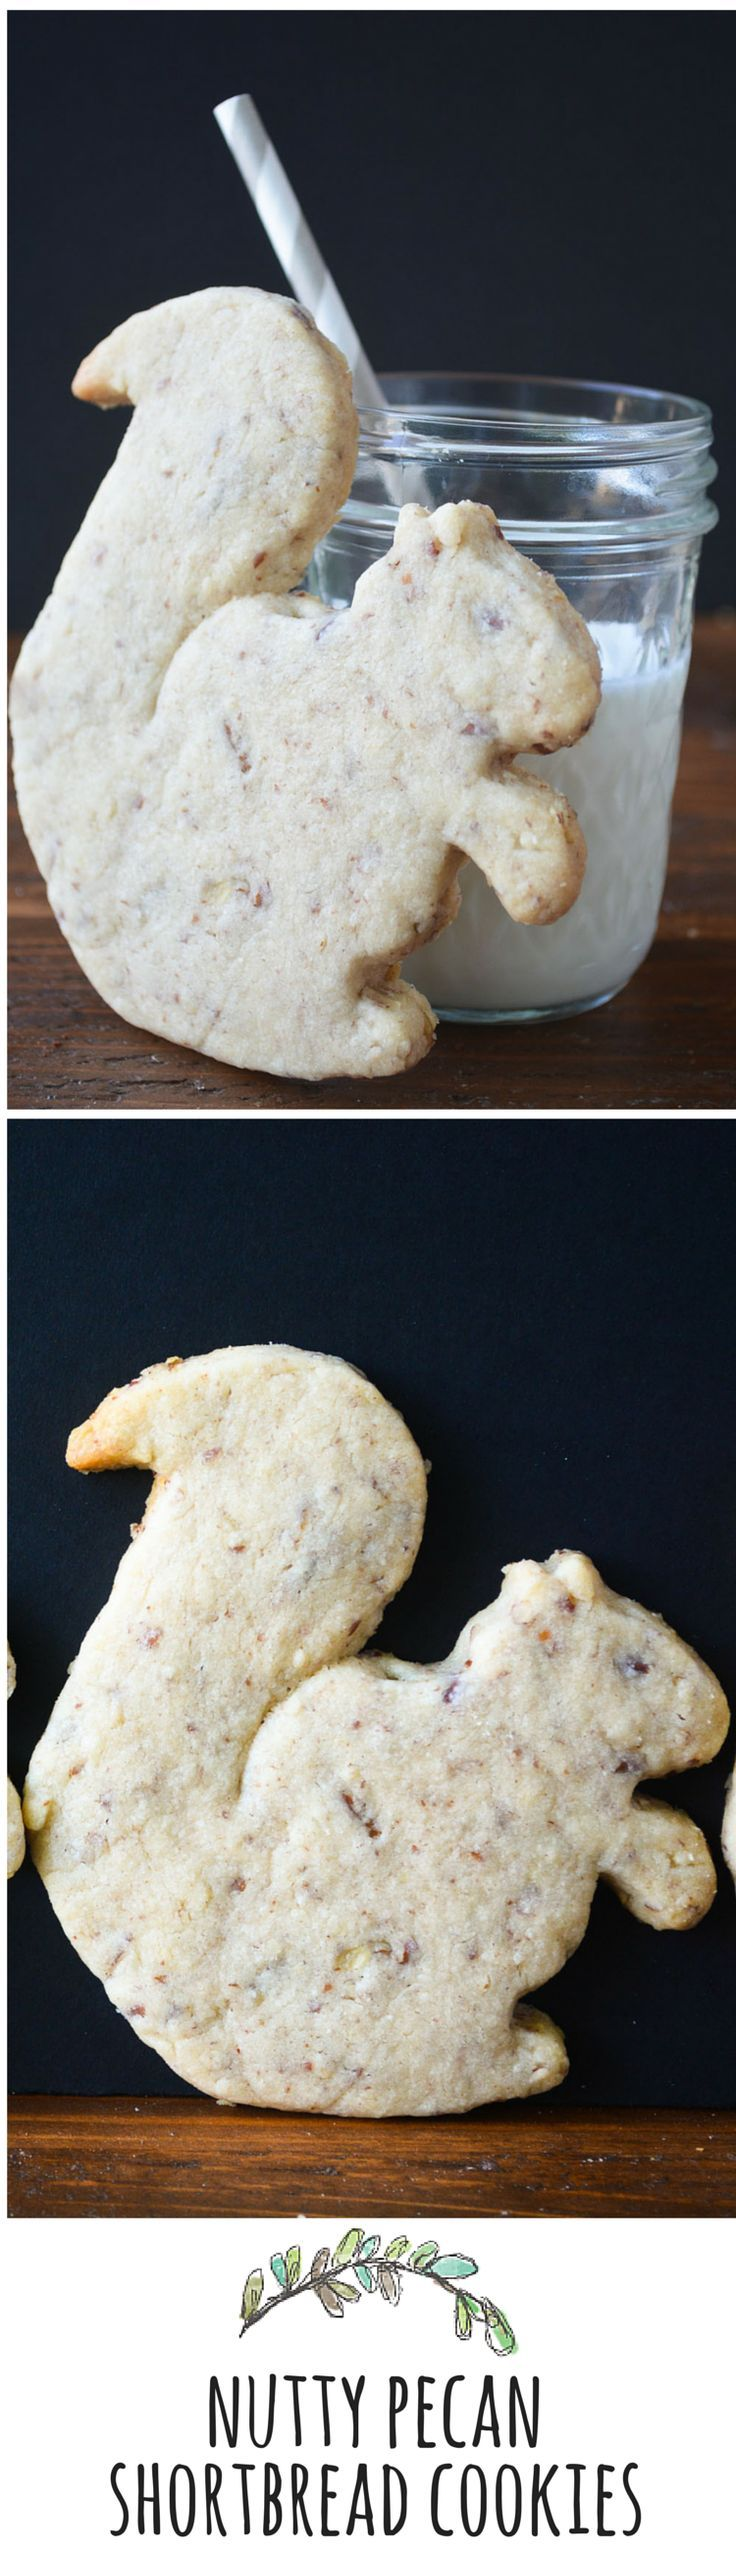 Buttery shortbread cookies loaded with crunchy pecans.